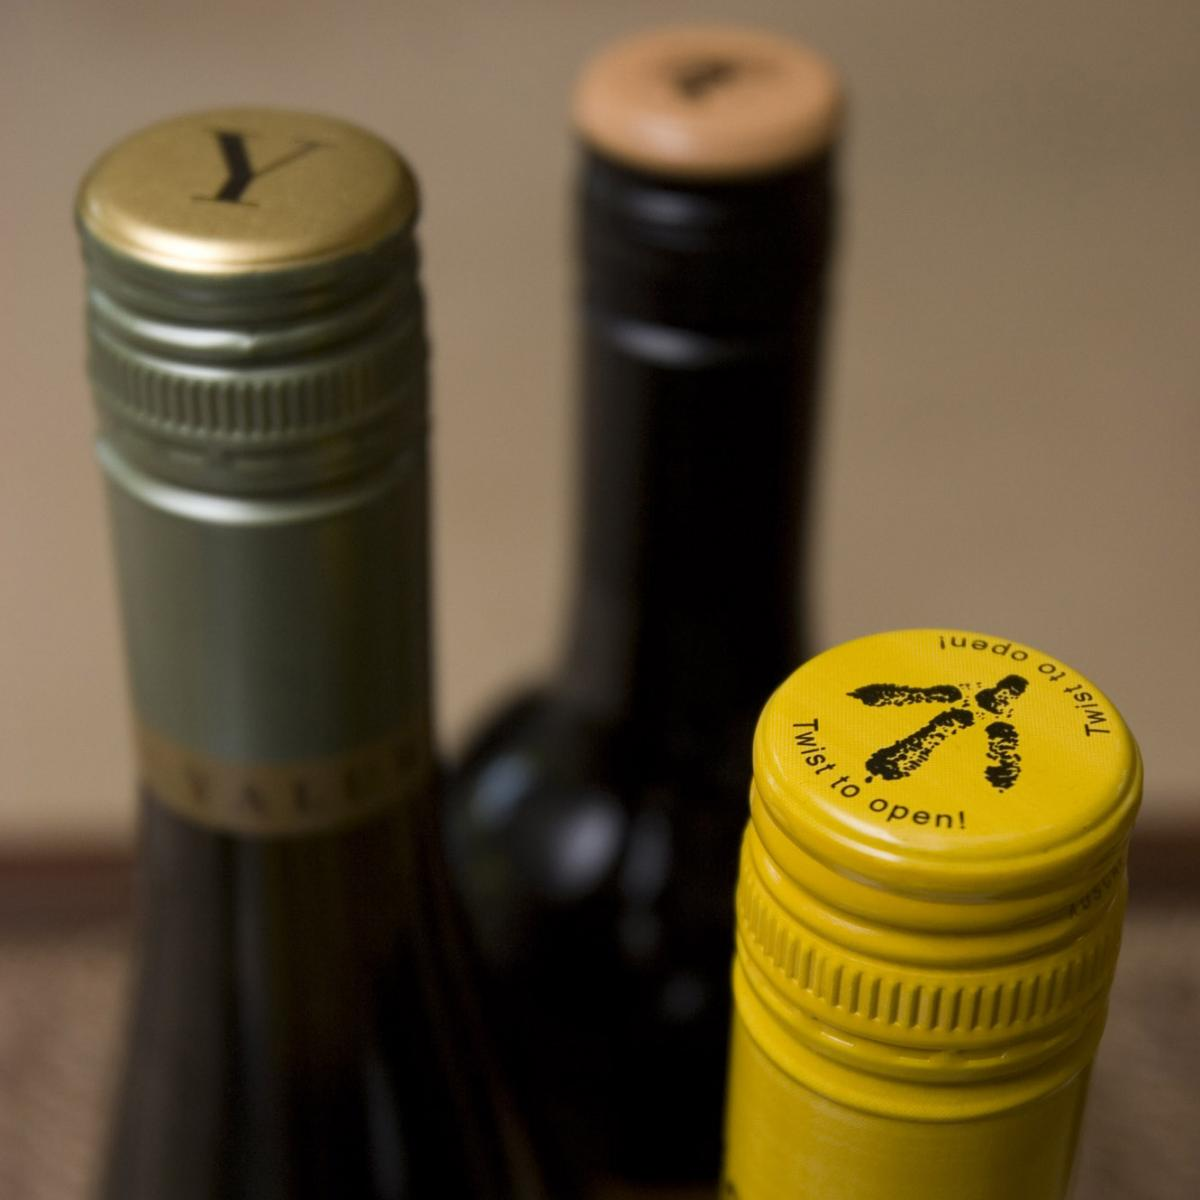 A variety of Australian wines with metal screwcaps are seen in a 2007 photo.